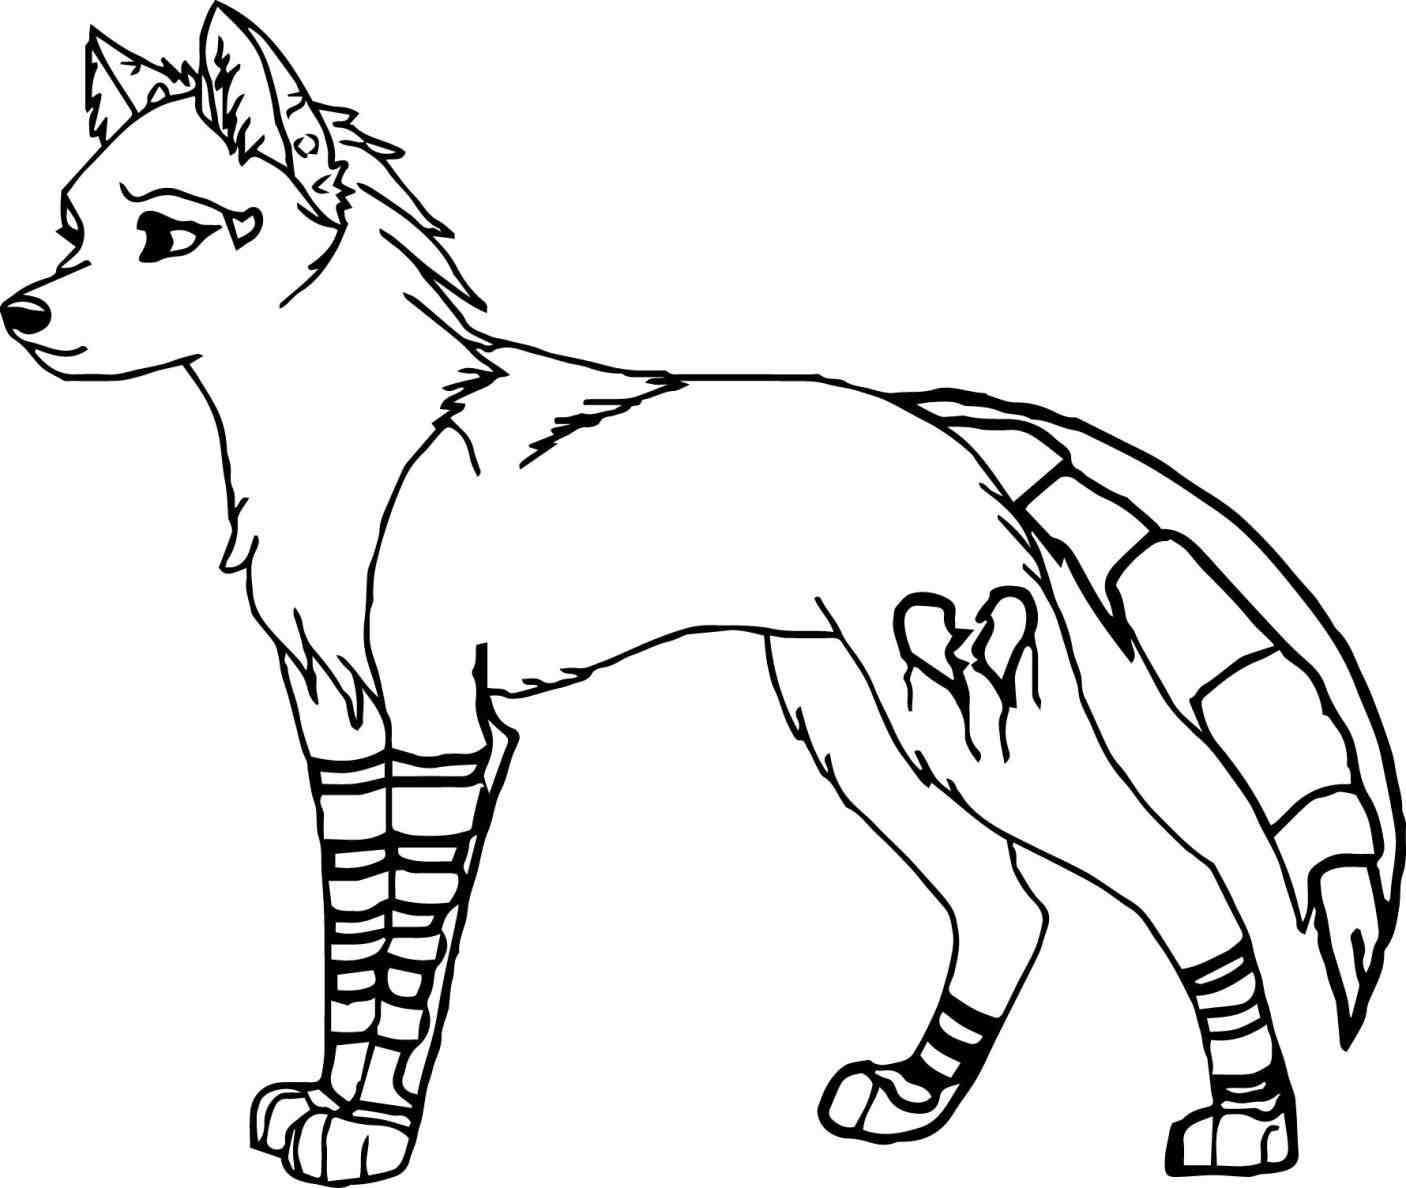 Anime Wolves Drawing At Getdrawings Free Download